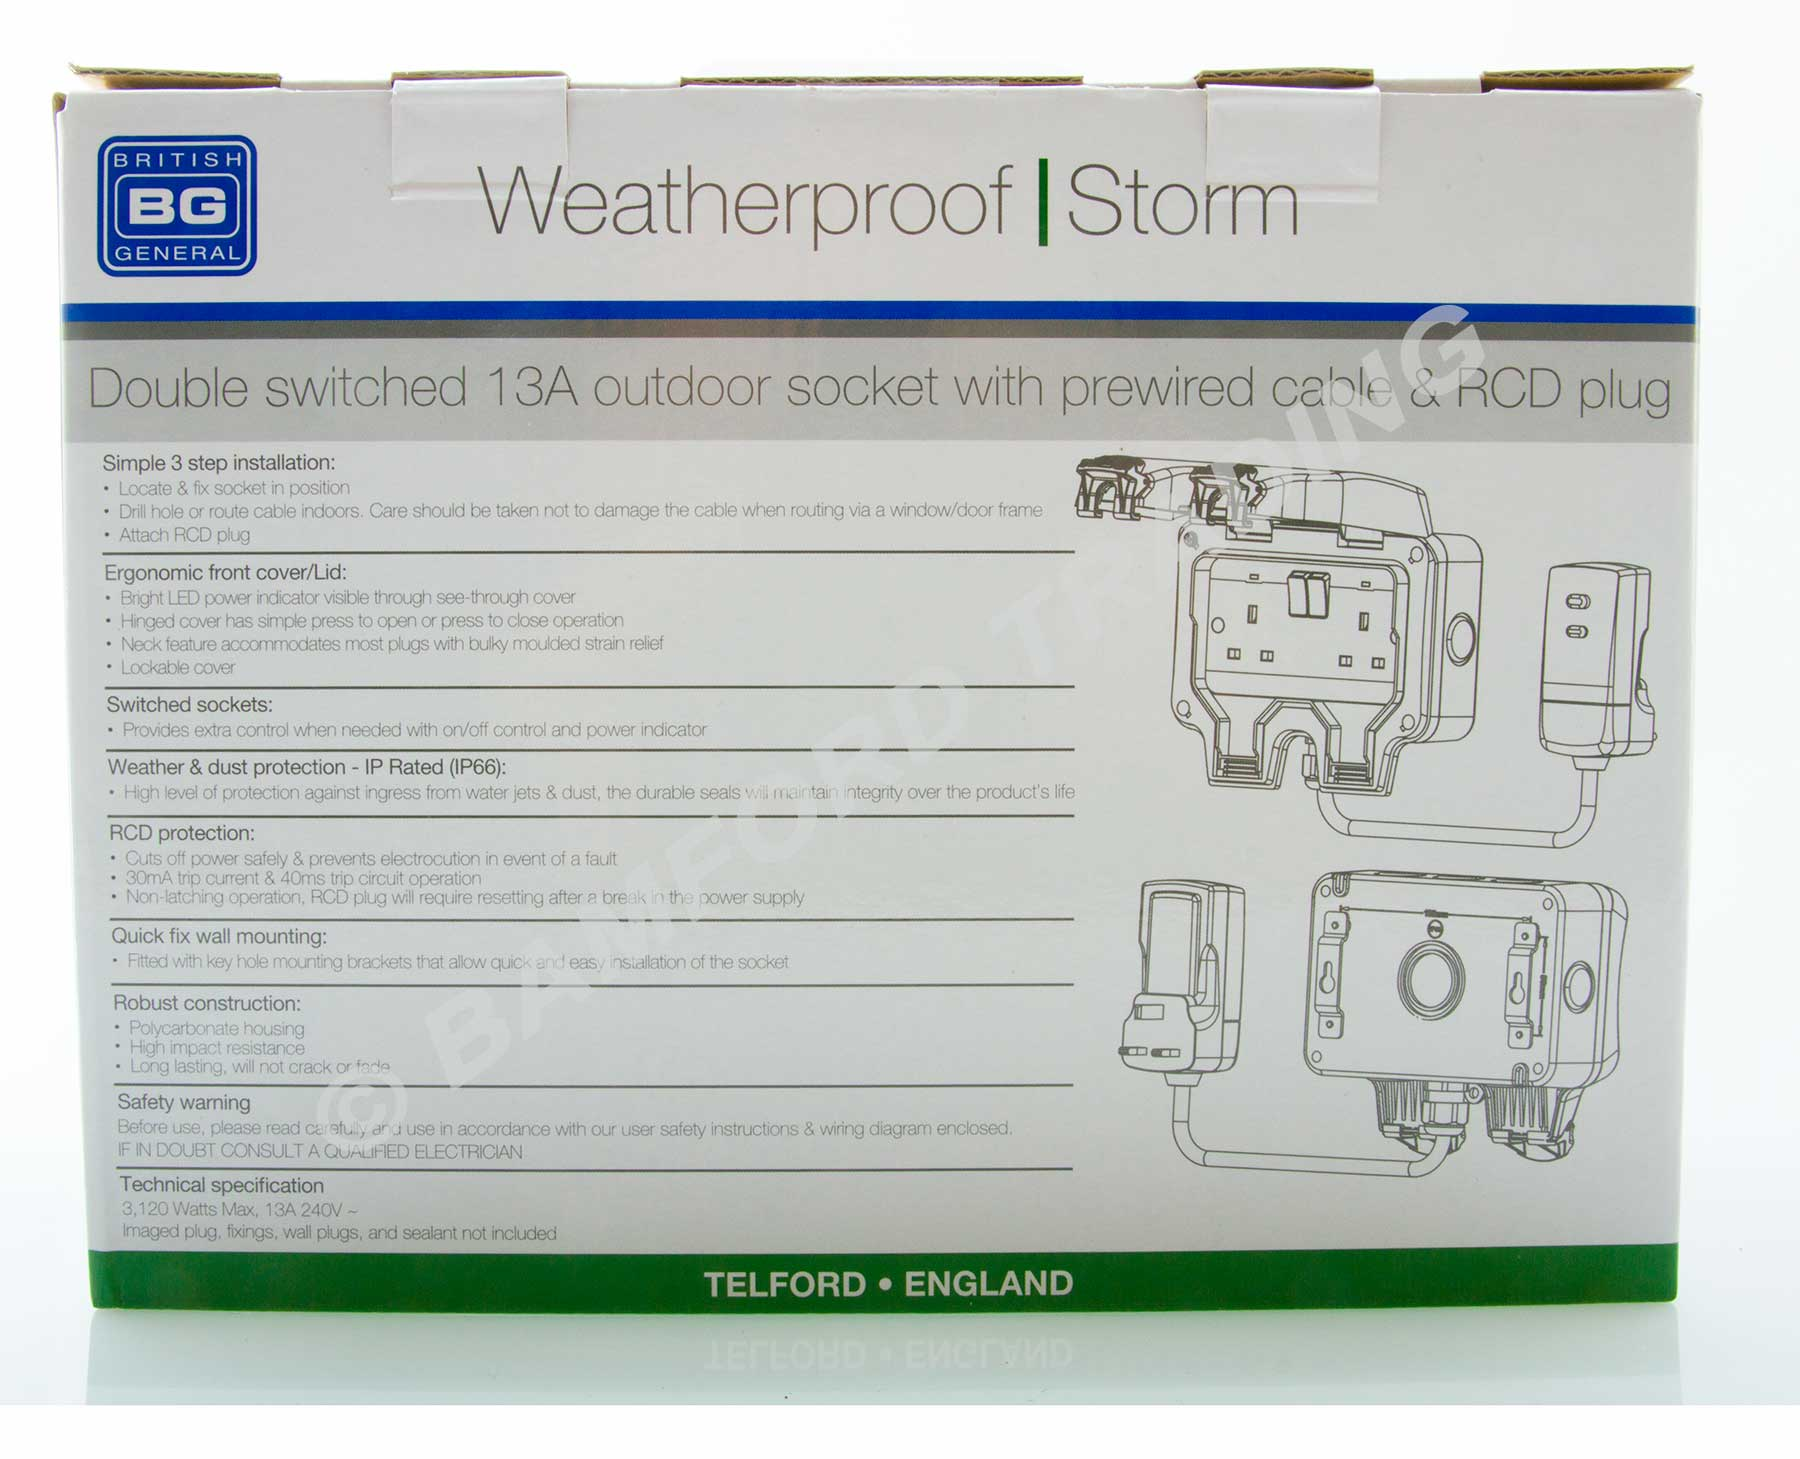 Masterplug Weatherproof Outdoor Mains Power Kit Nexus Wp22kit 3 01 Wiring Diagram Thumbnail 4